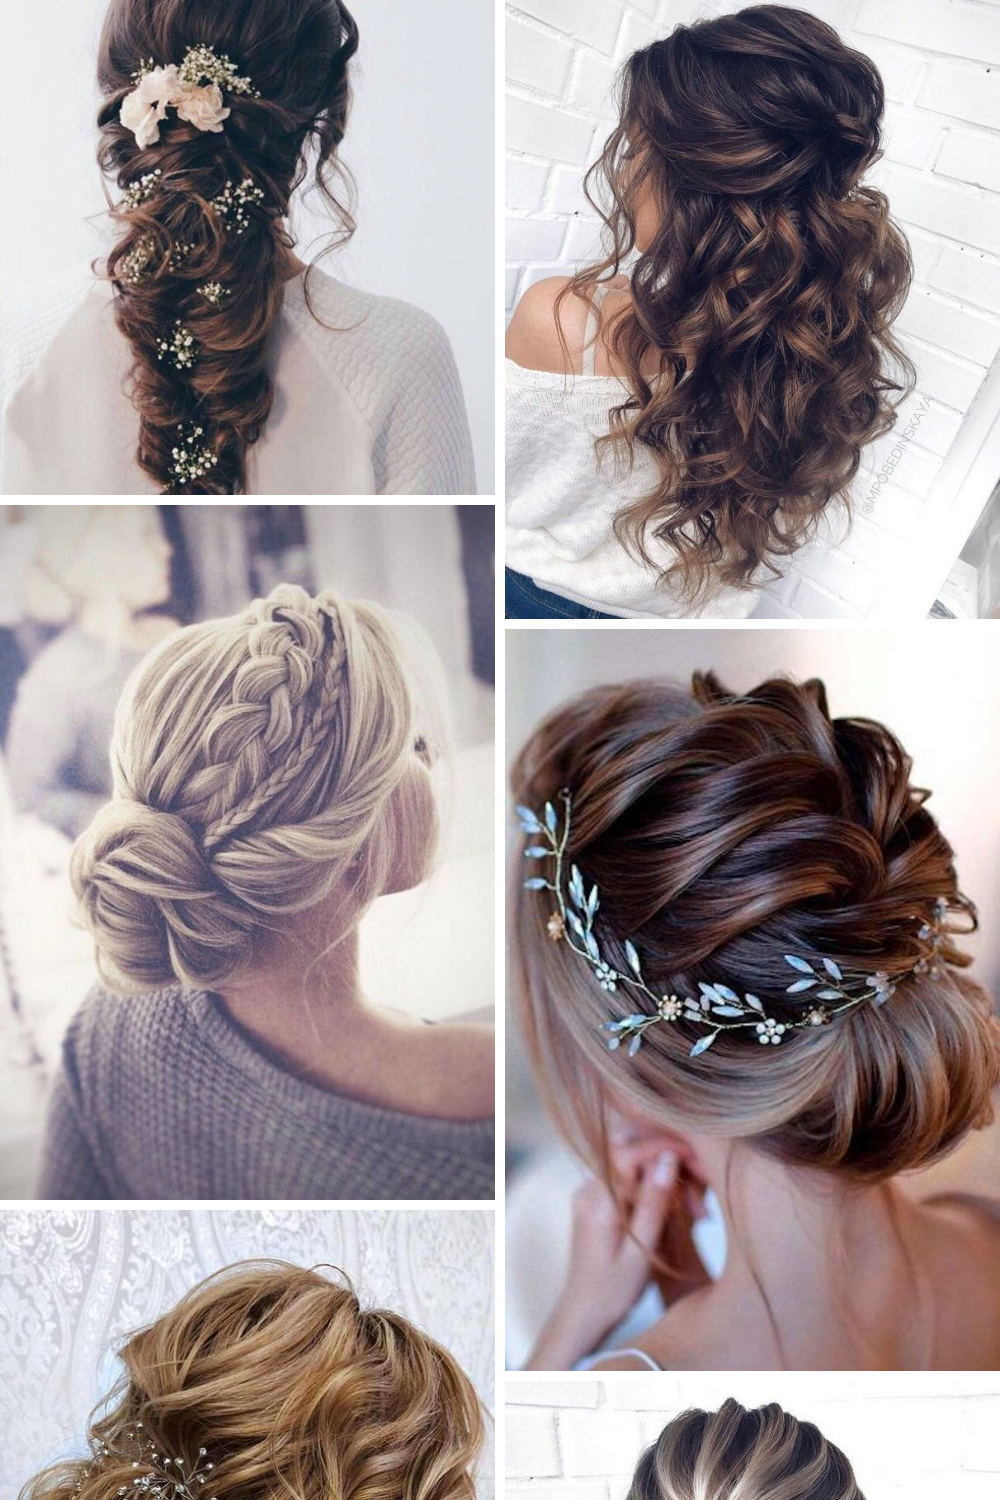 29 creative wedding hairstyle simple and easy, wedding